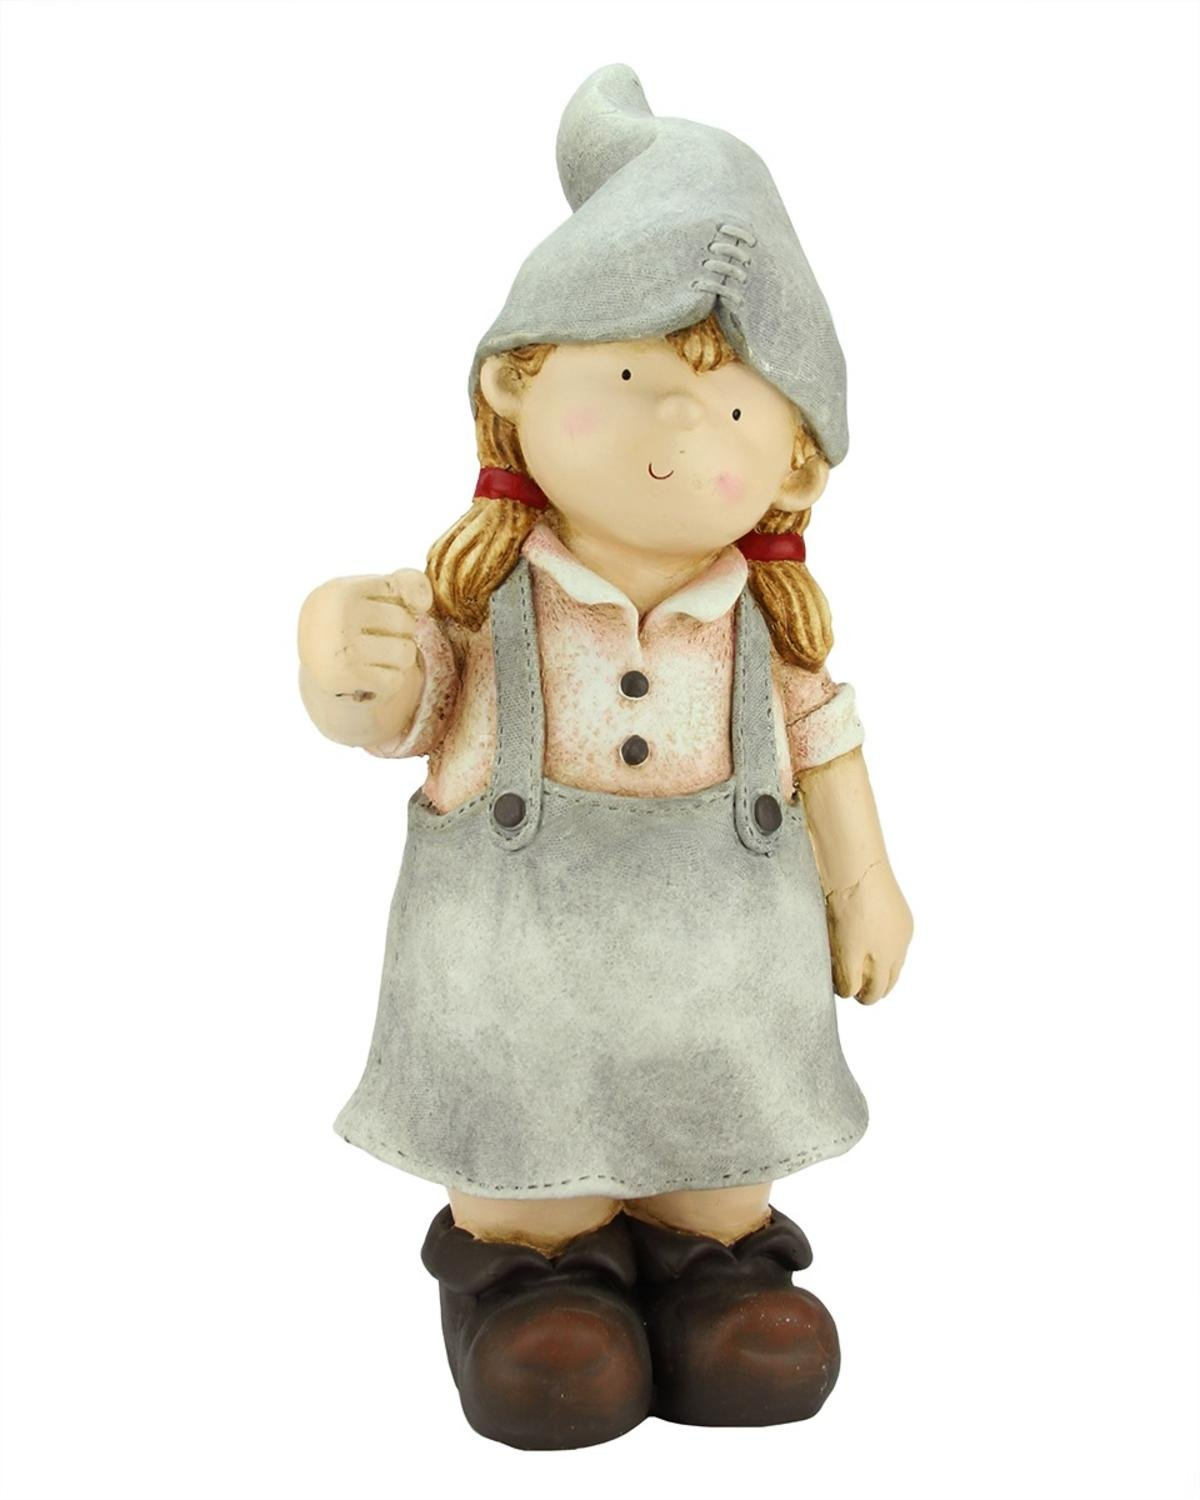 Northlight CB64950 Standing Young Girl Gnome Outdoor Patio Garden Statue Statuary and Fountains, 21.25'', Gray